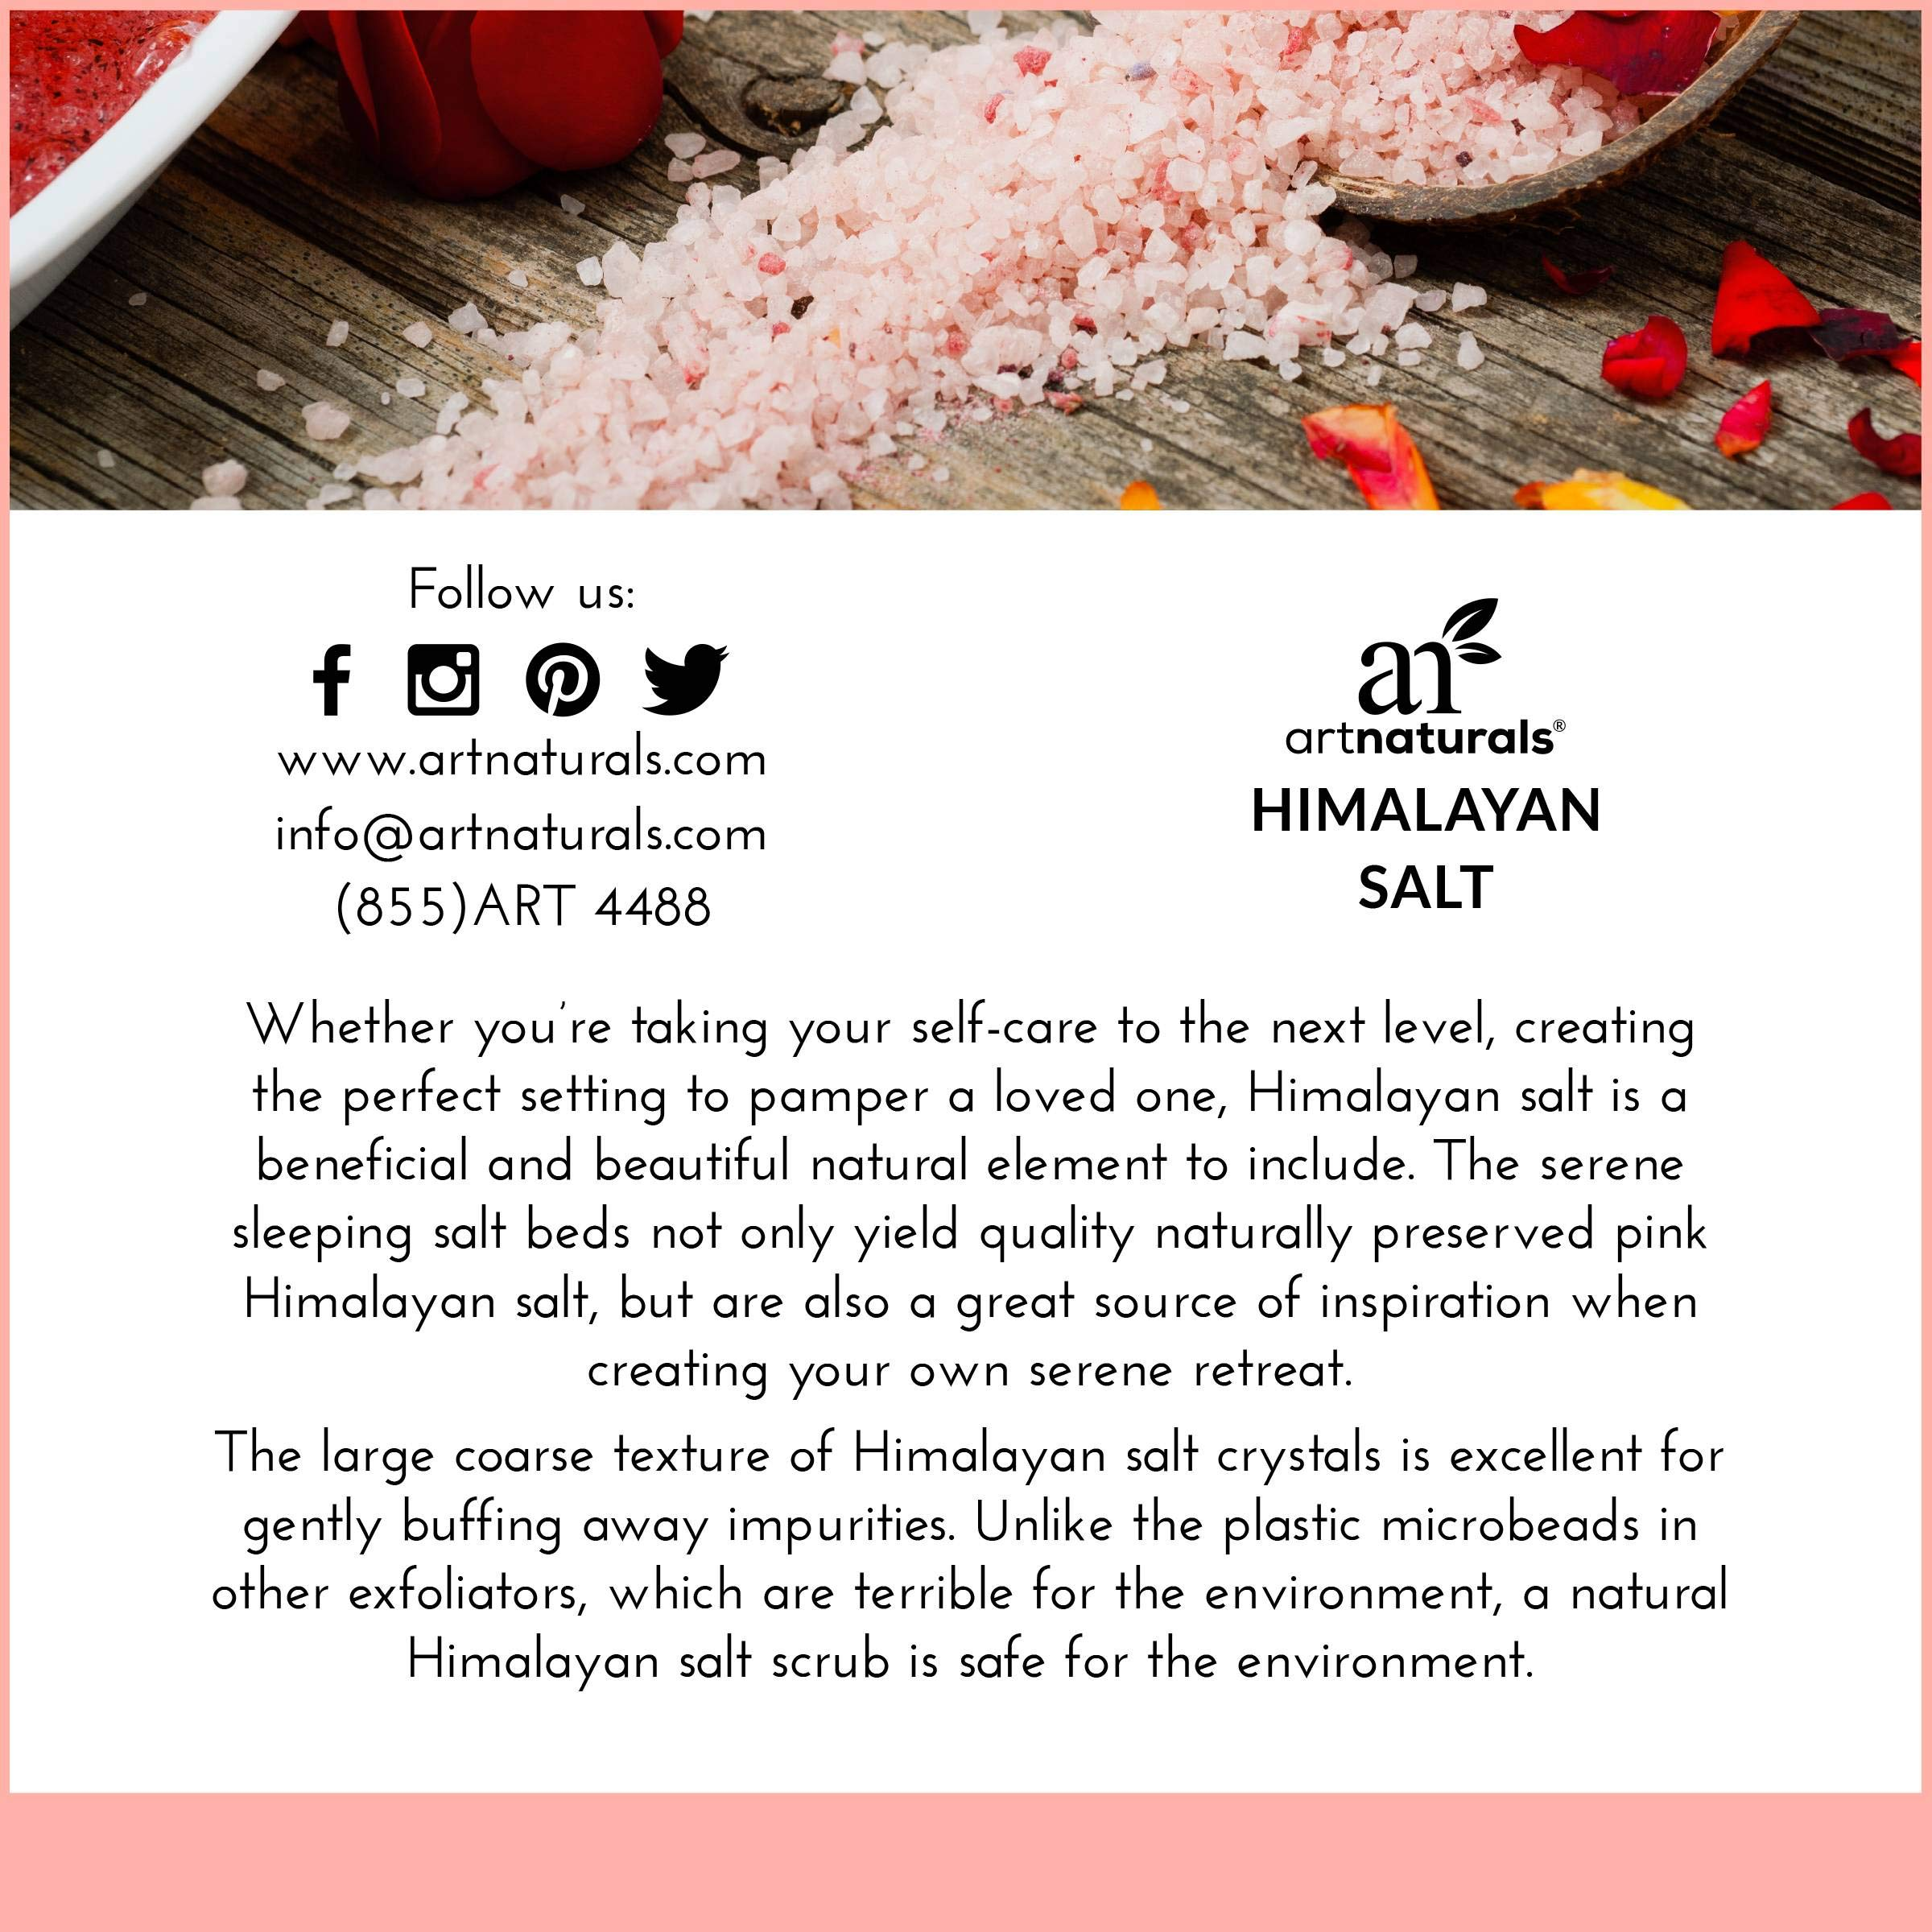 ArtNaturals Himalayan Rock Salt Lamp - Hand Carved Pink Crystal from Pure Salt in the Himalayas - for Rest, Relaxation and Energy - Real Wooden Base by ArtNaturals (Image #3)